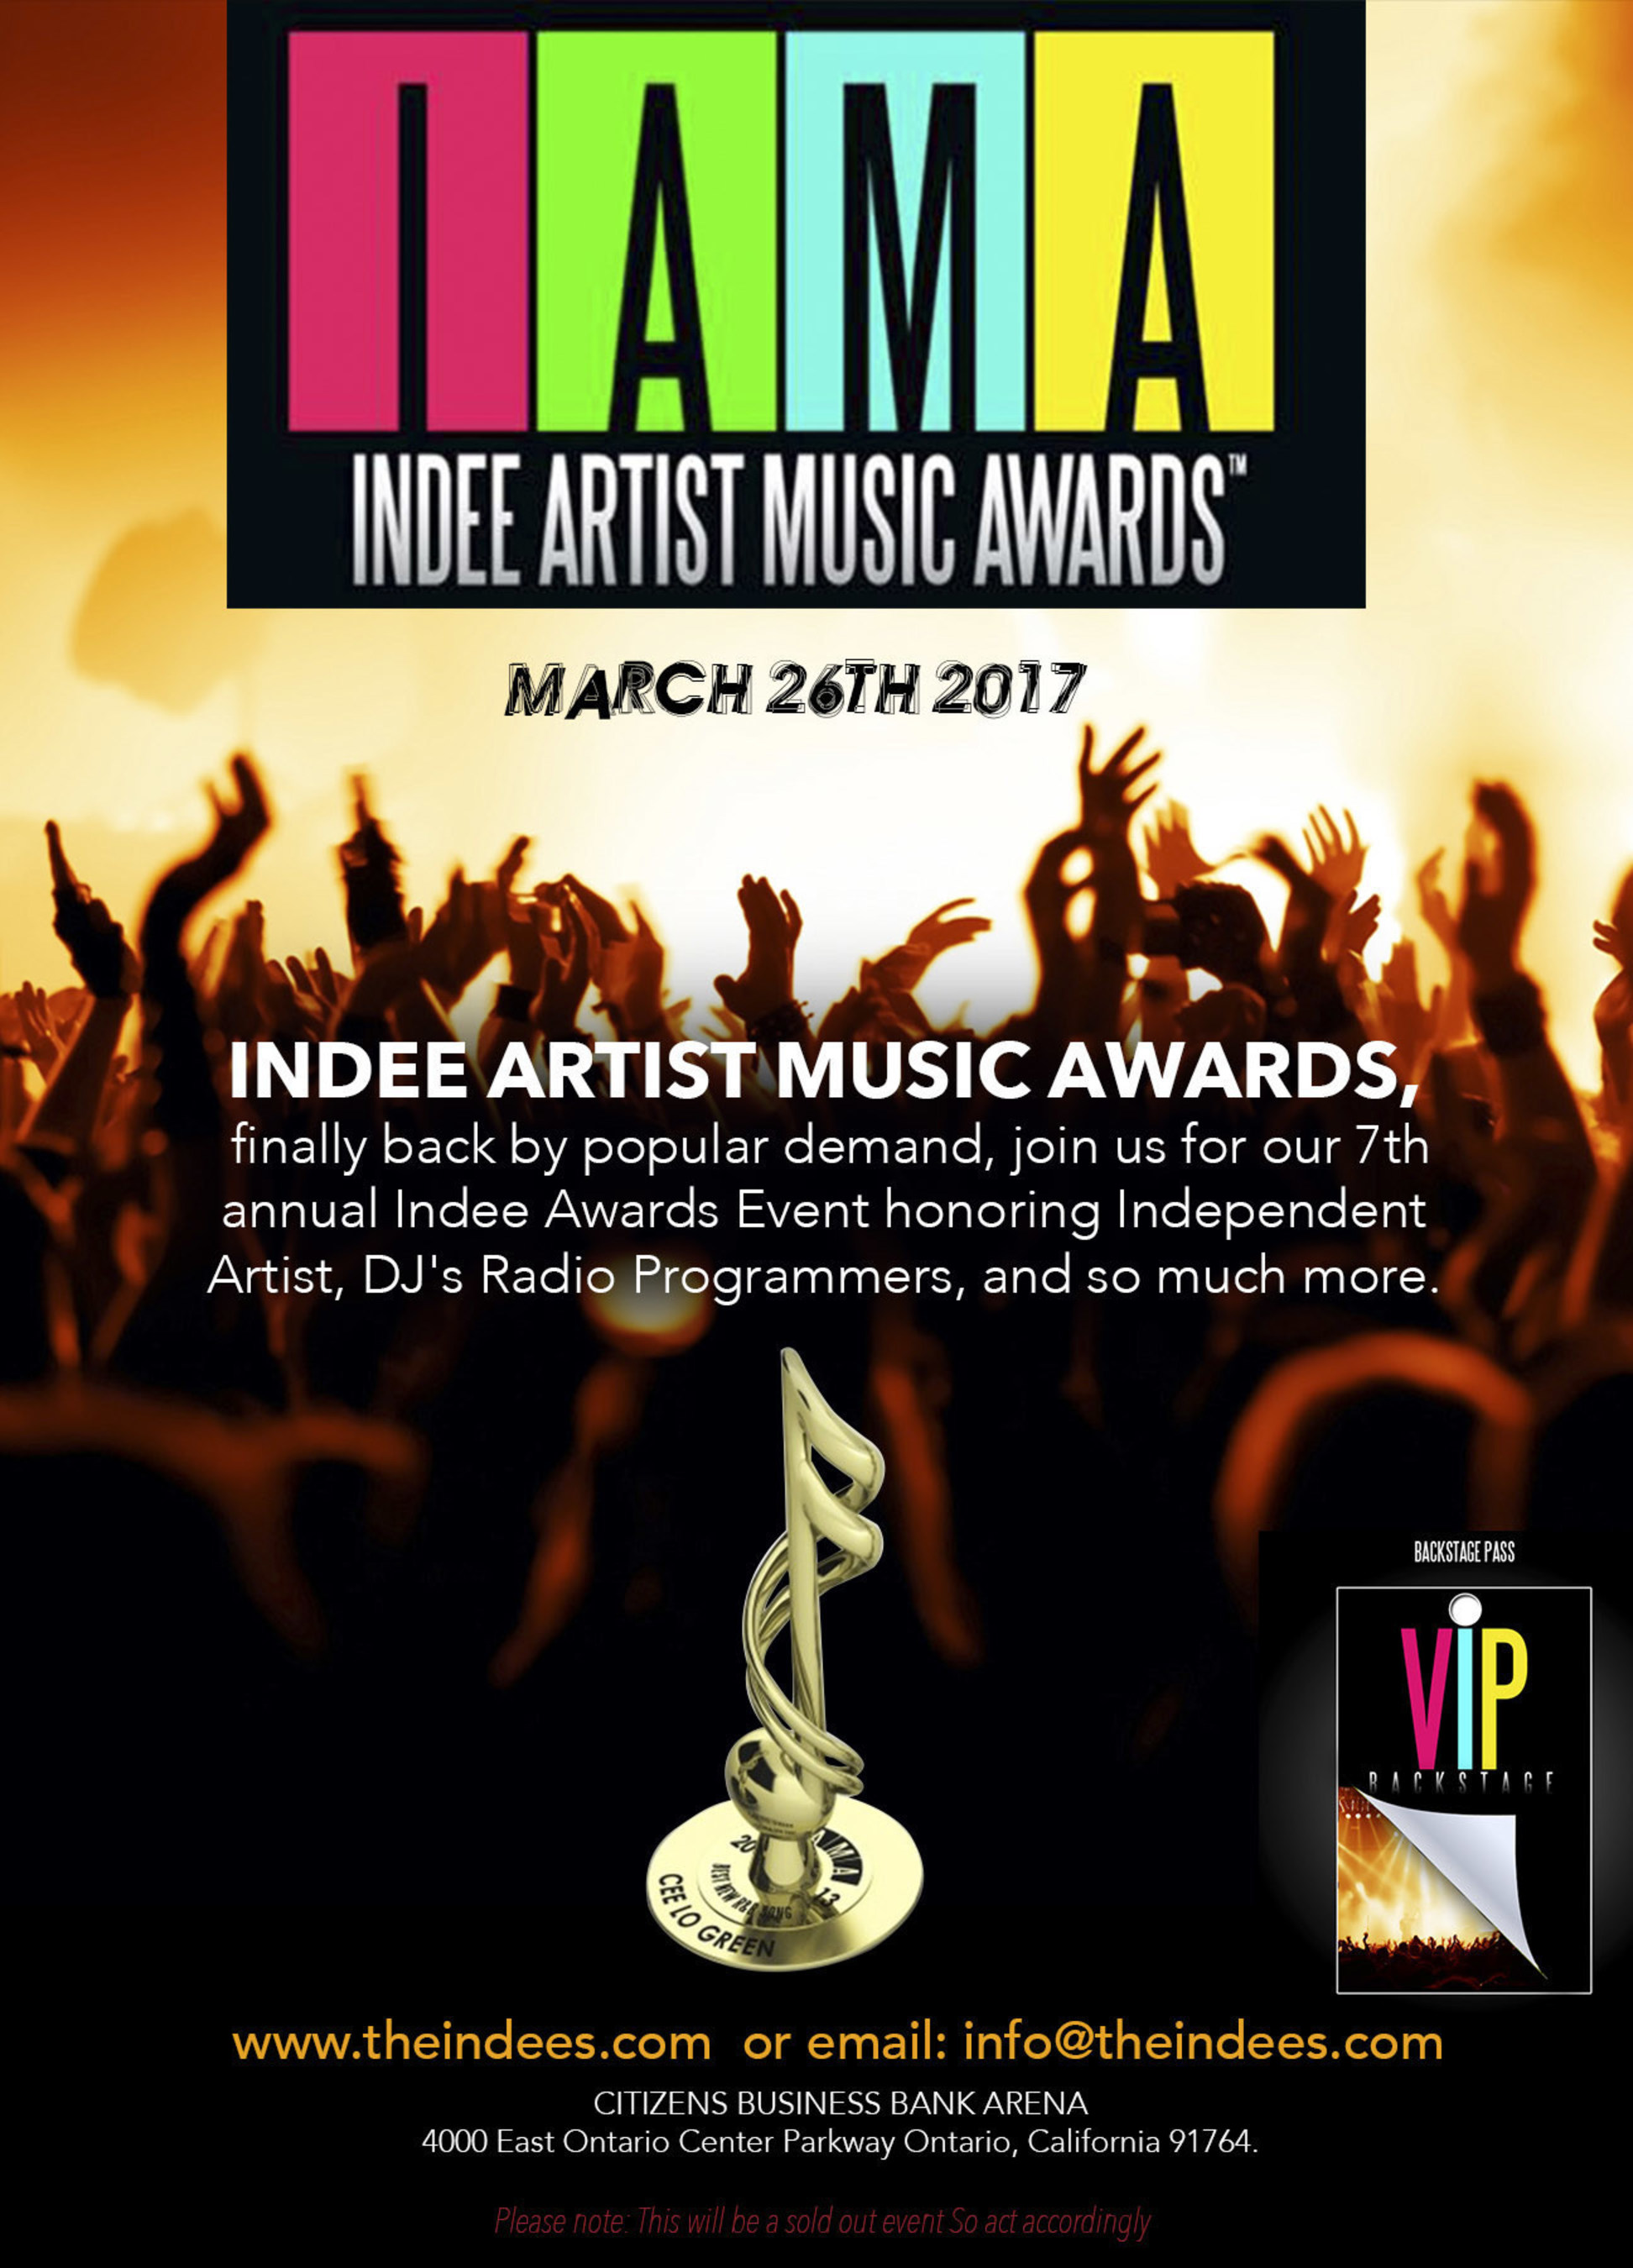 U Rock Corporation Relaunches The Indee Artist Music Awards